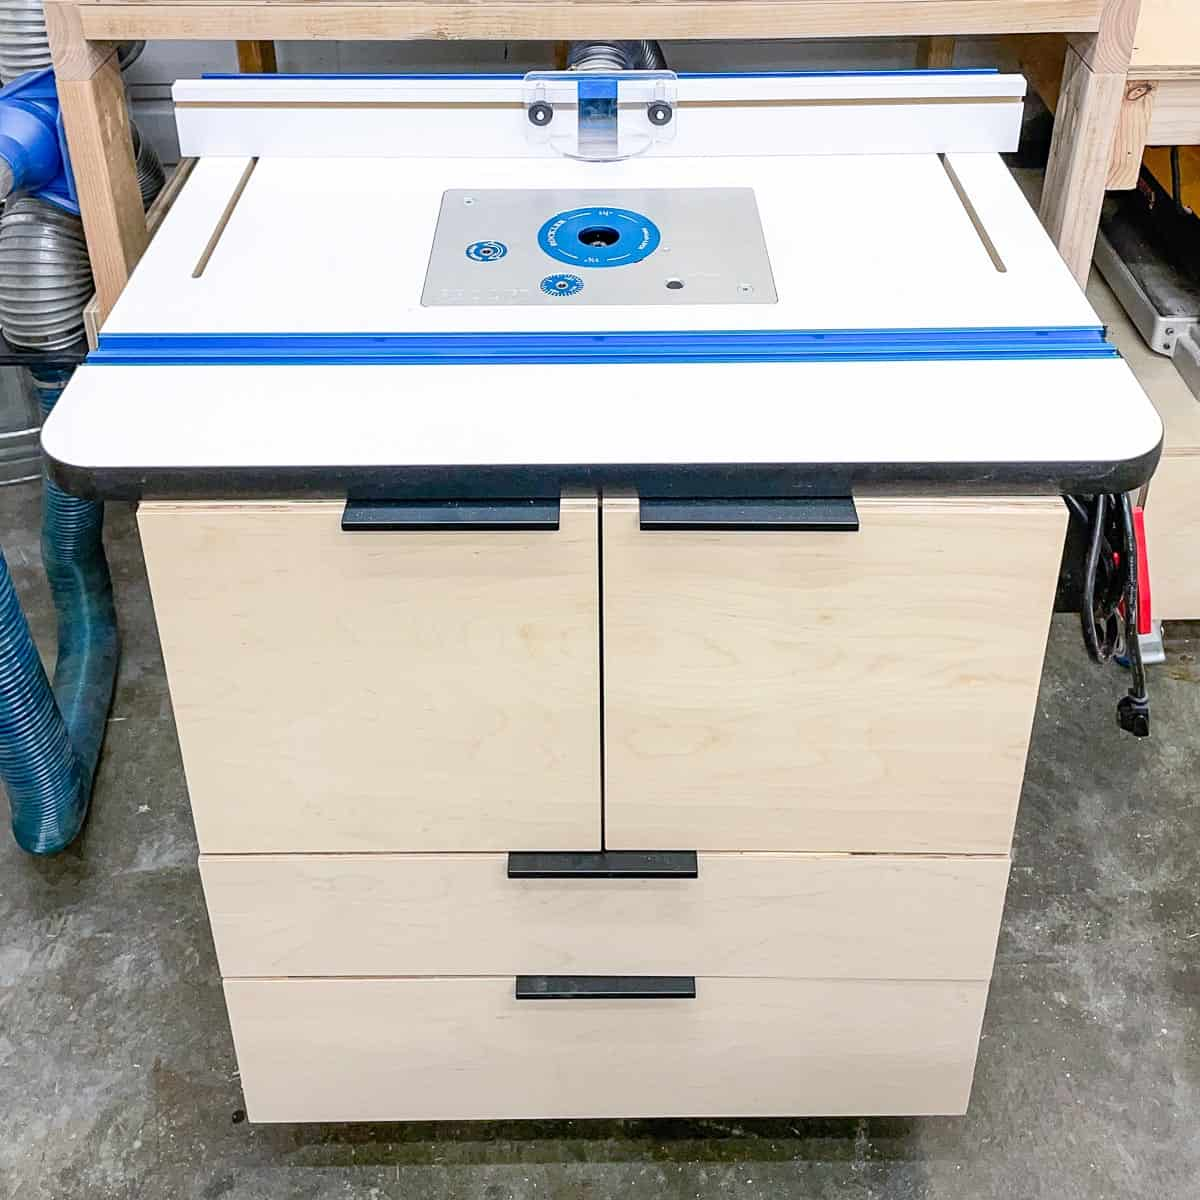 DIY router table with Rockler top and fence